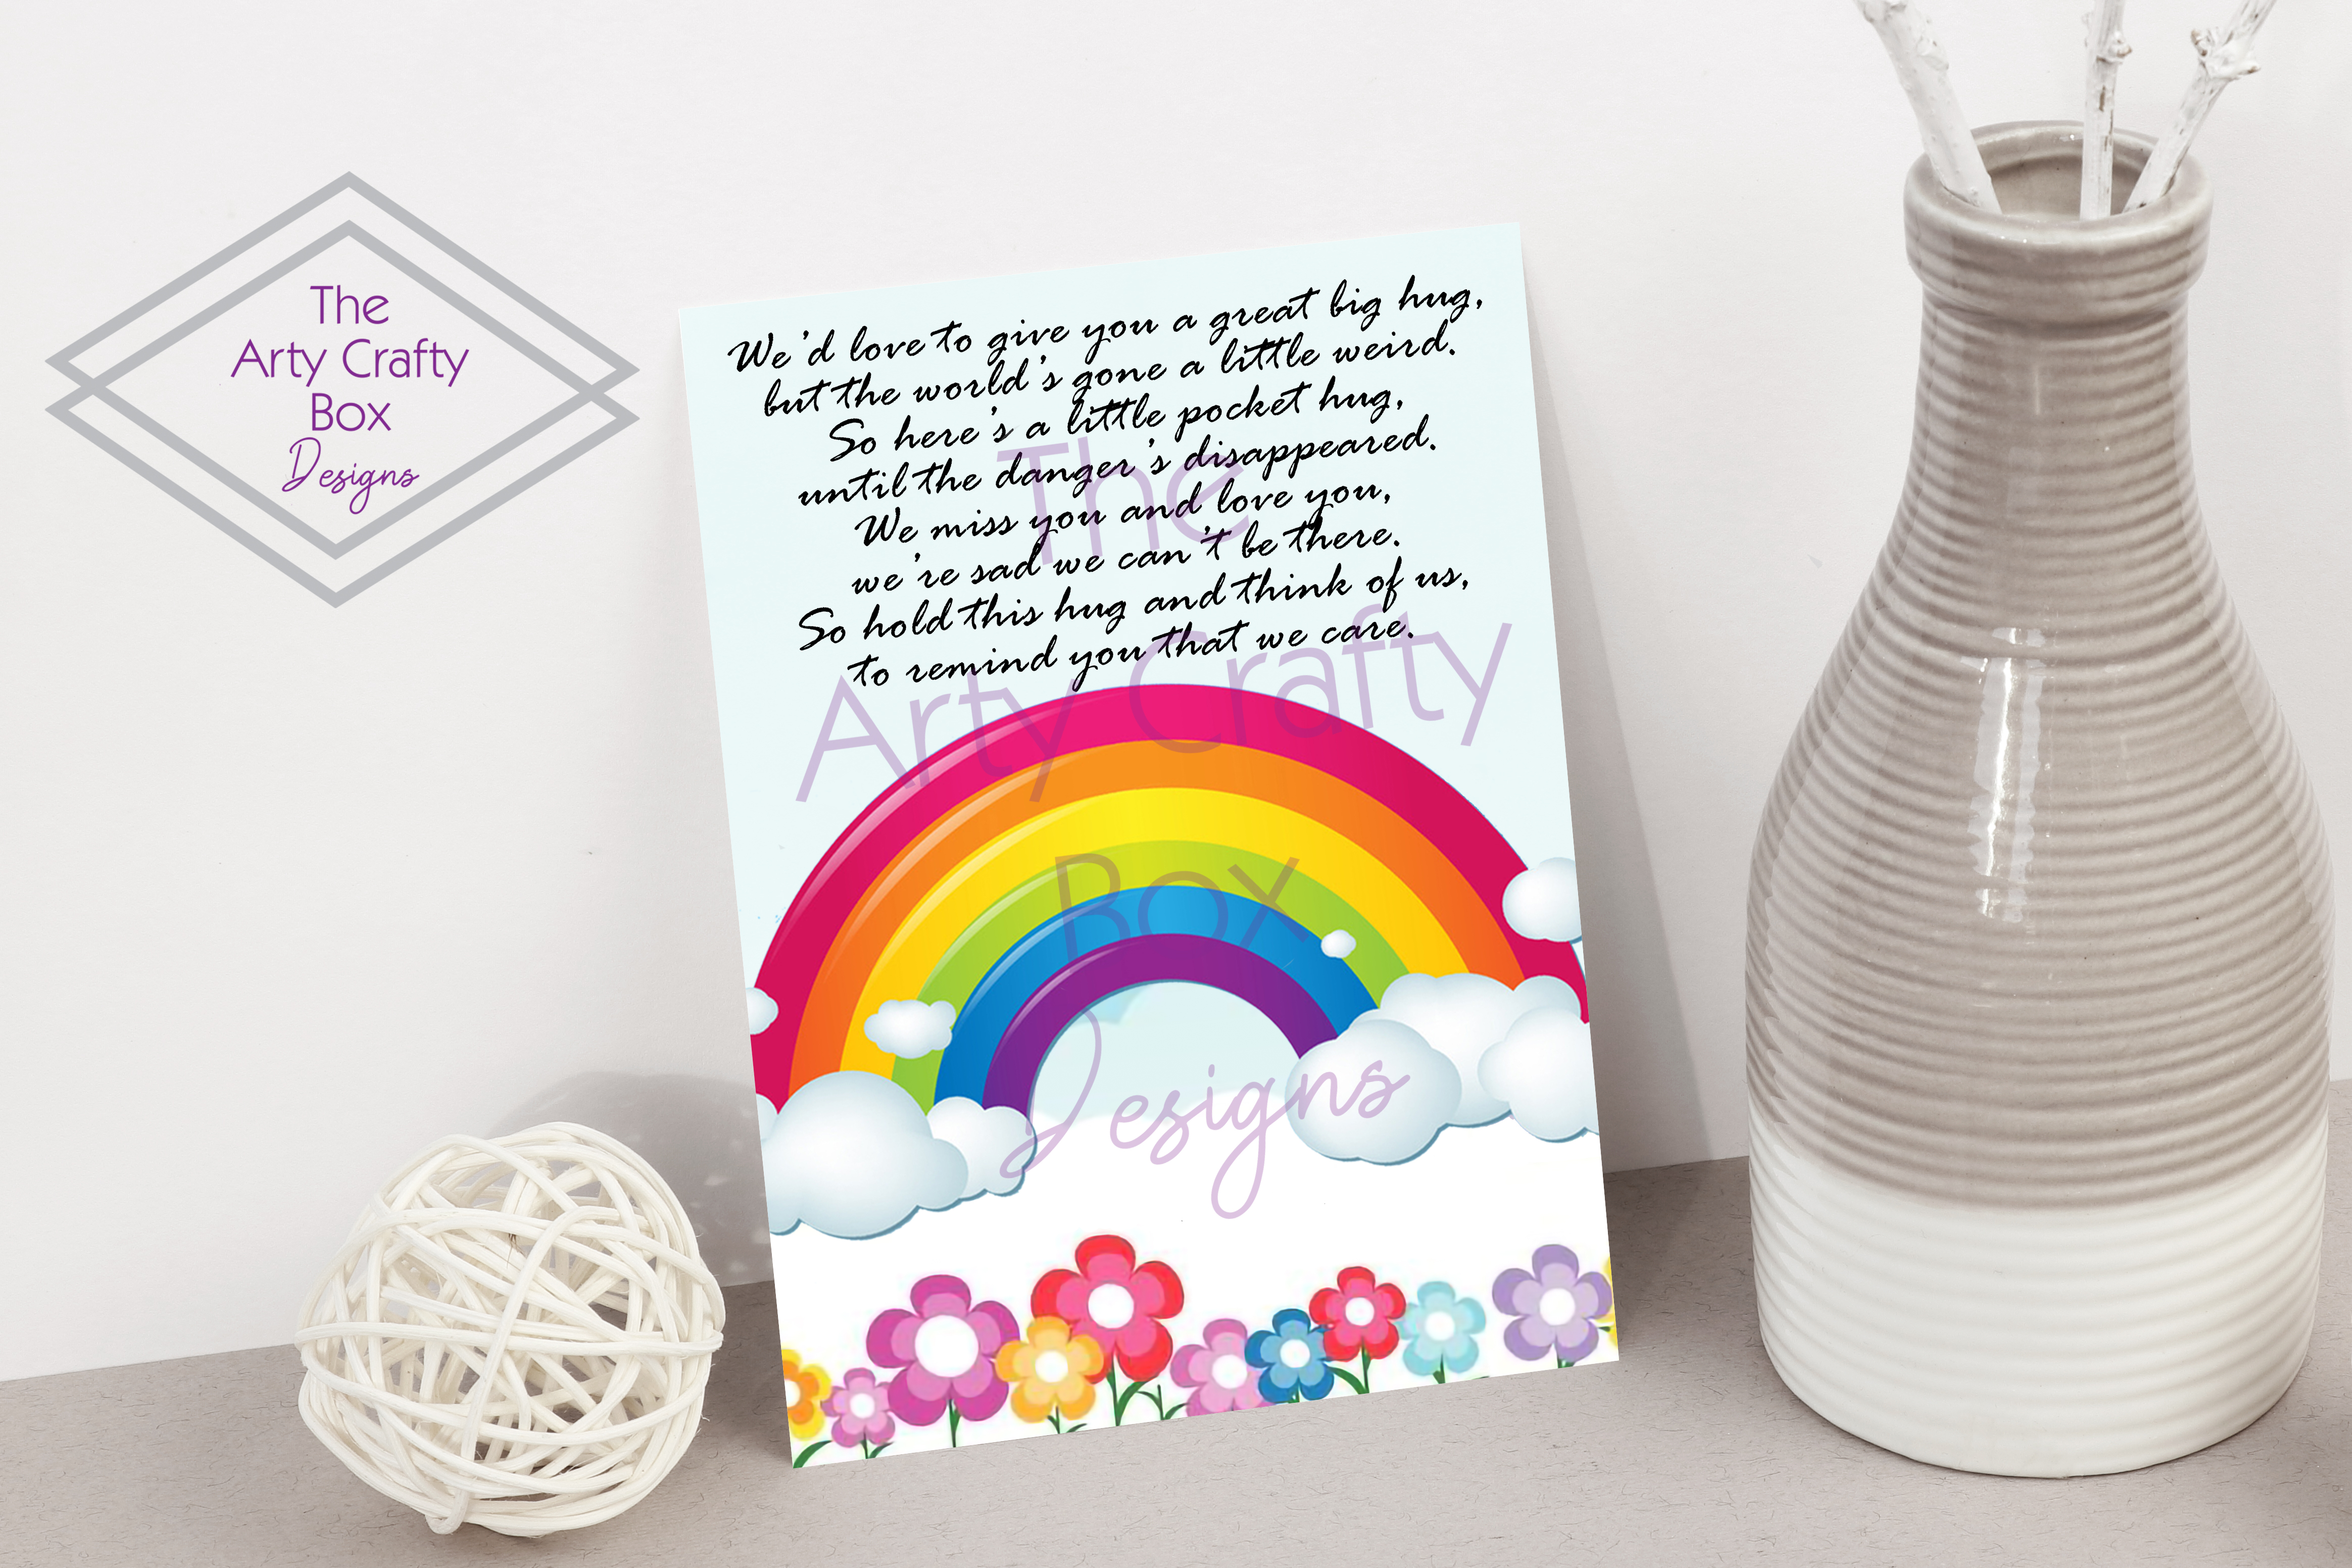 Download Free Pocket Hug With Poem Graphic By The Arty Crafty Box Designs for Cricut Explore, Silhouette and other cutting machines.